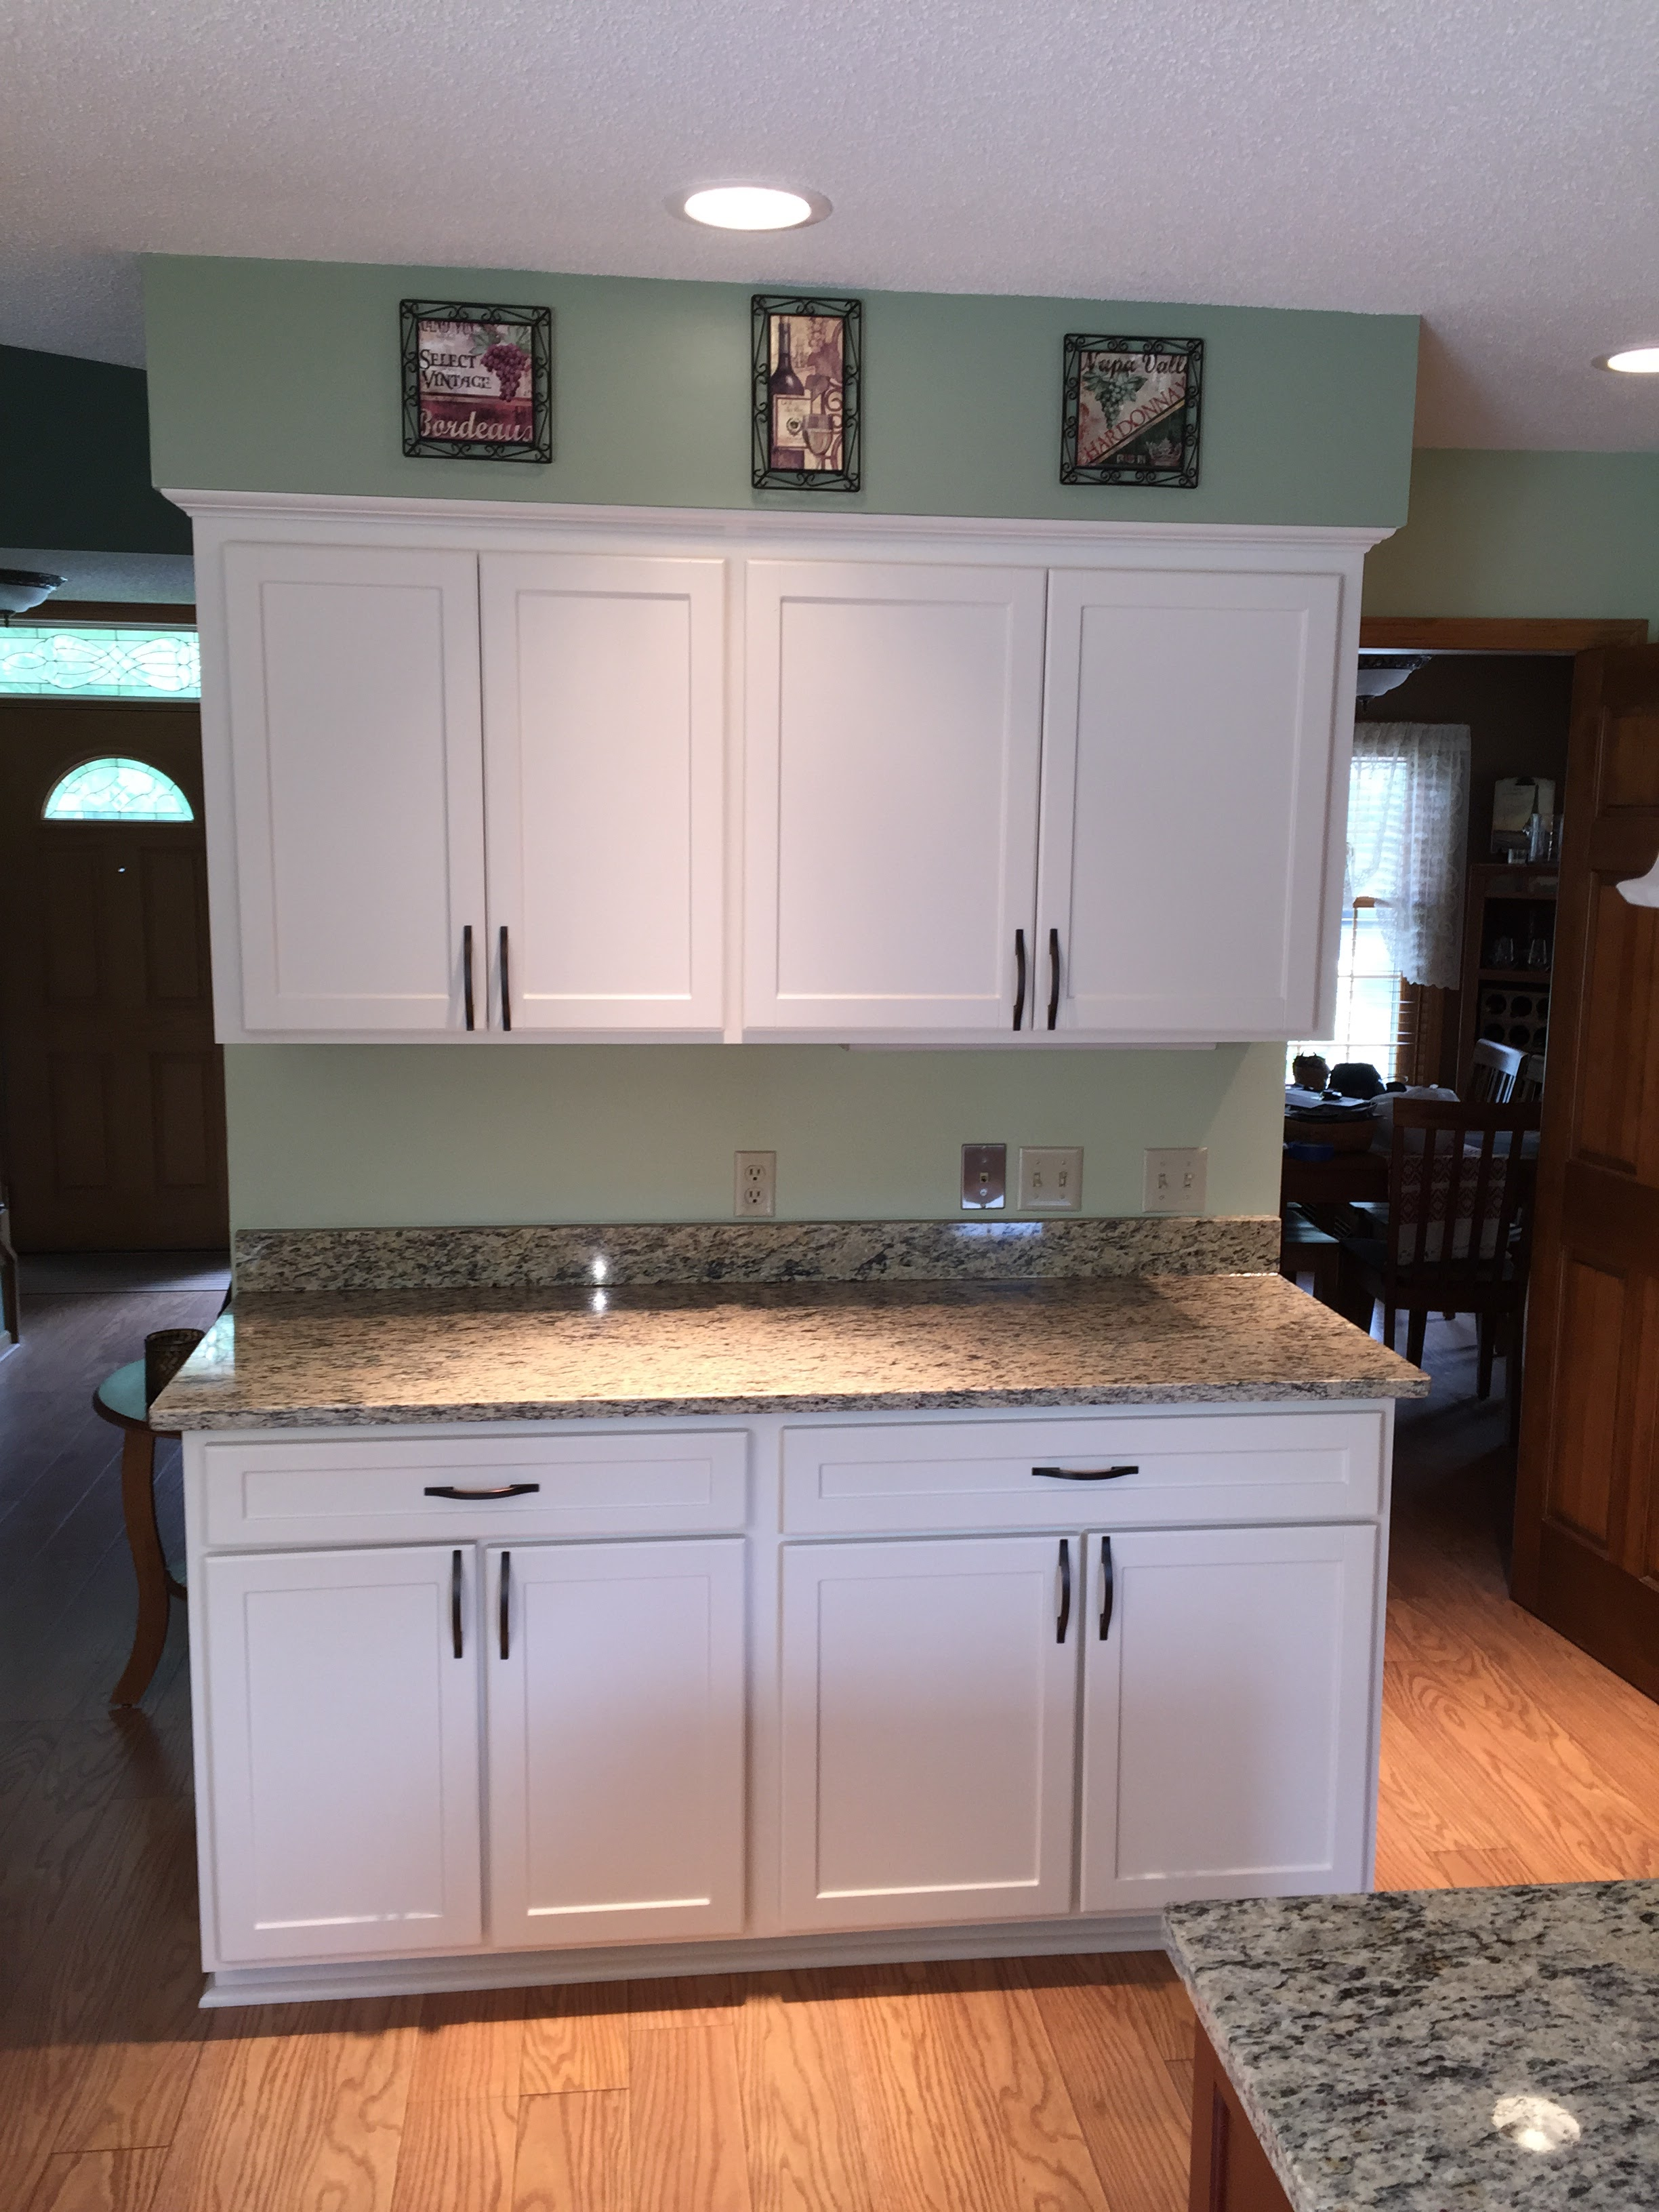 AFTER - Beautiful newly refaced cabinets in a modern, easy-to-clean and maintain White finish